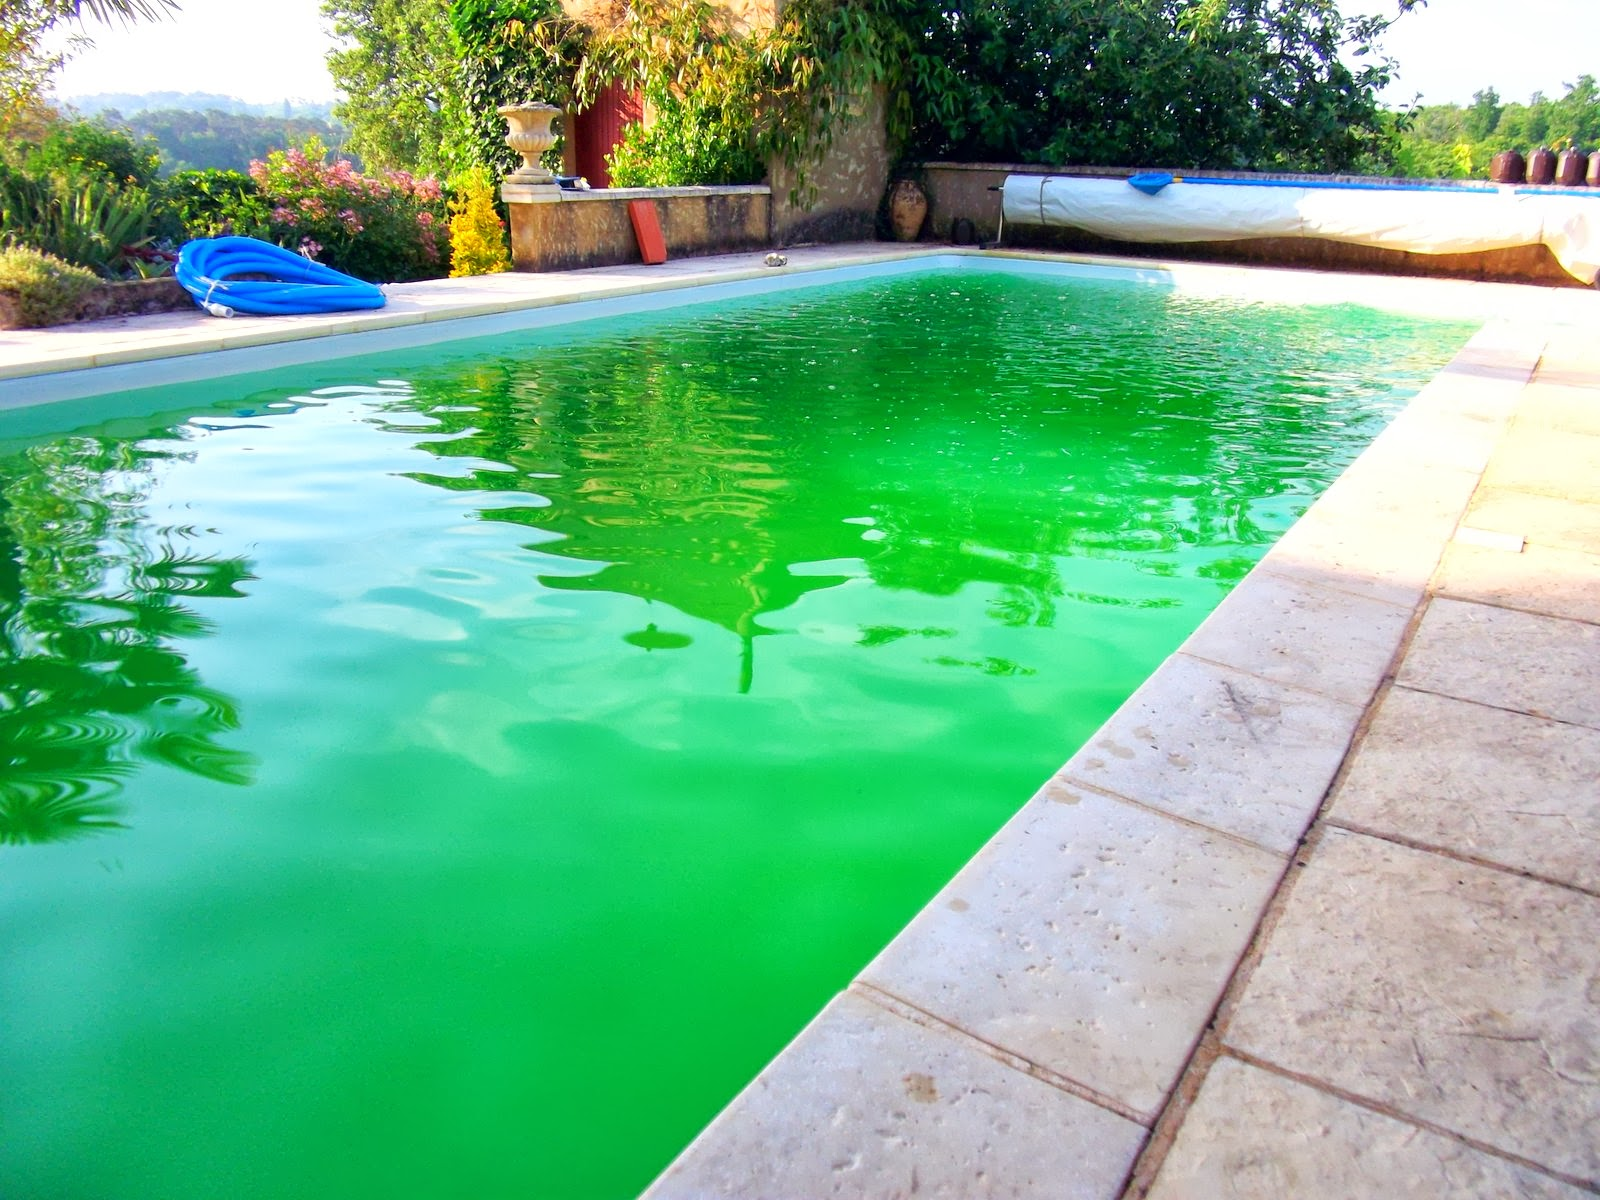 Magnon 39 s meanderings yuk - Can you swim after putting algaecide in pool ...